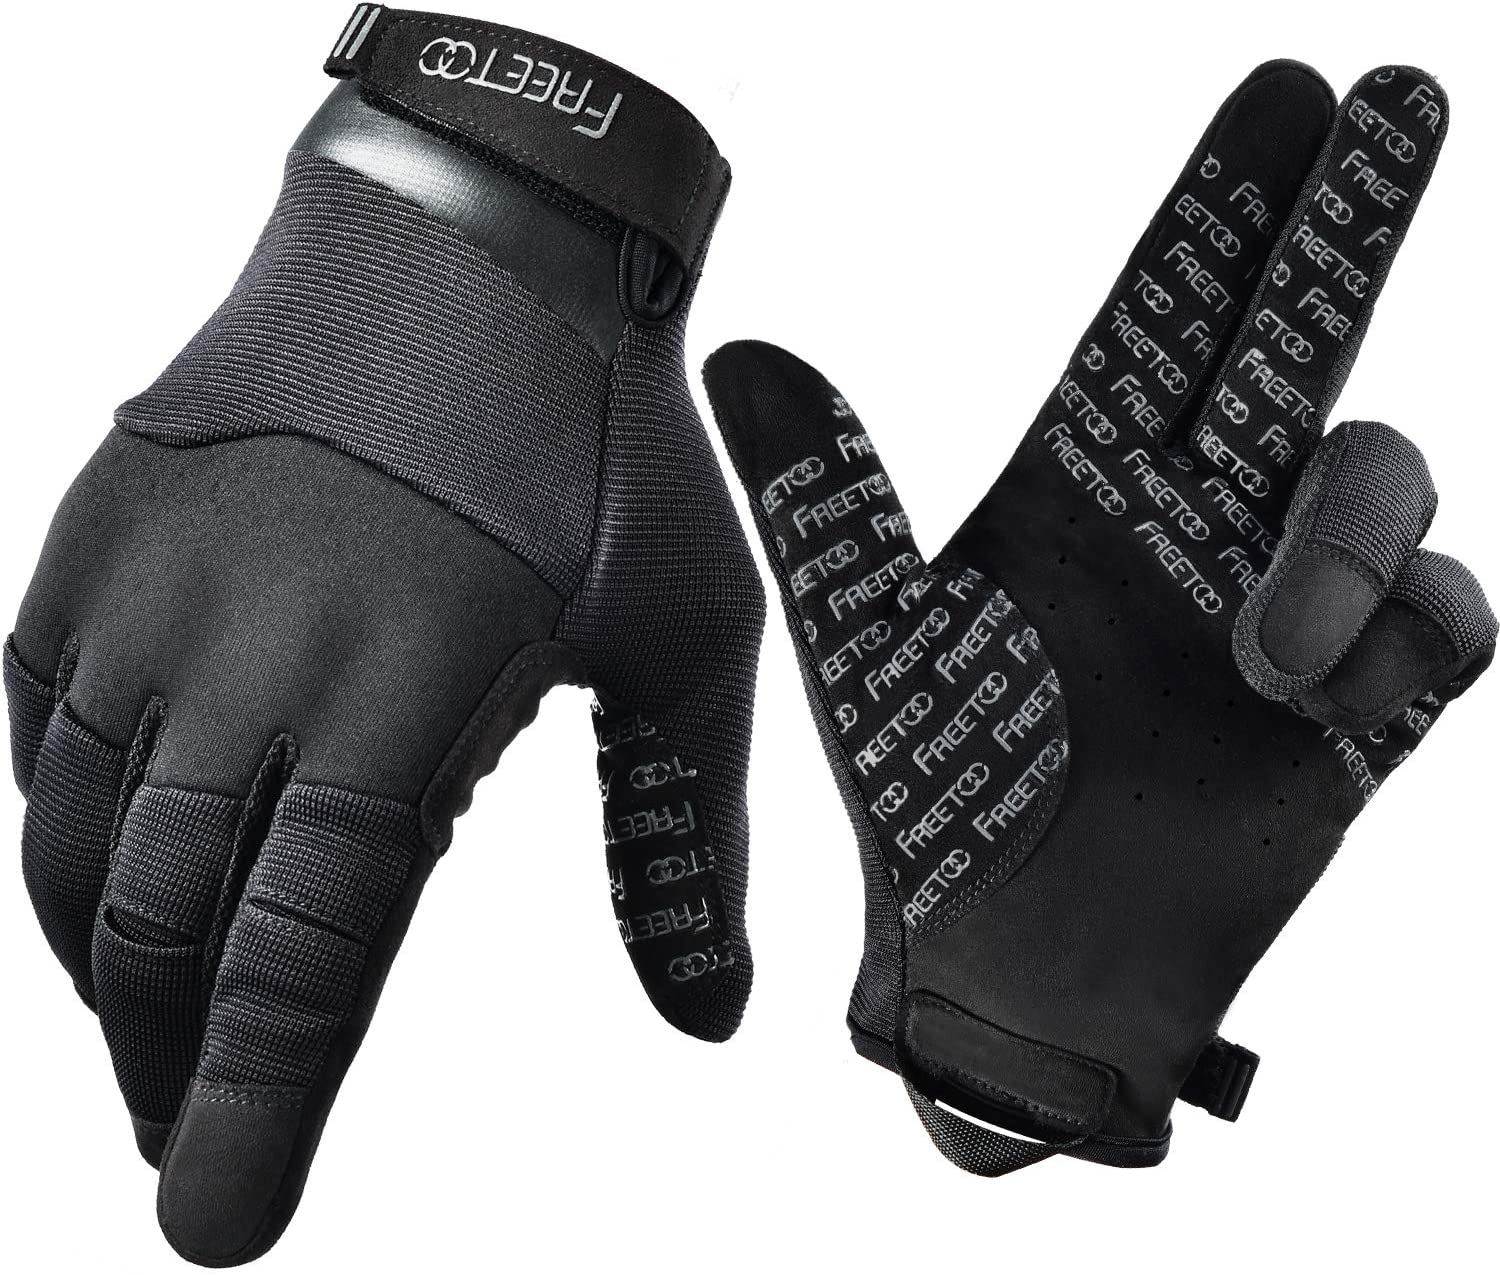 FREETOO tactical gloves in color black with FREETOO prints on the palm part, made of silicone material.